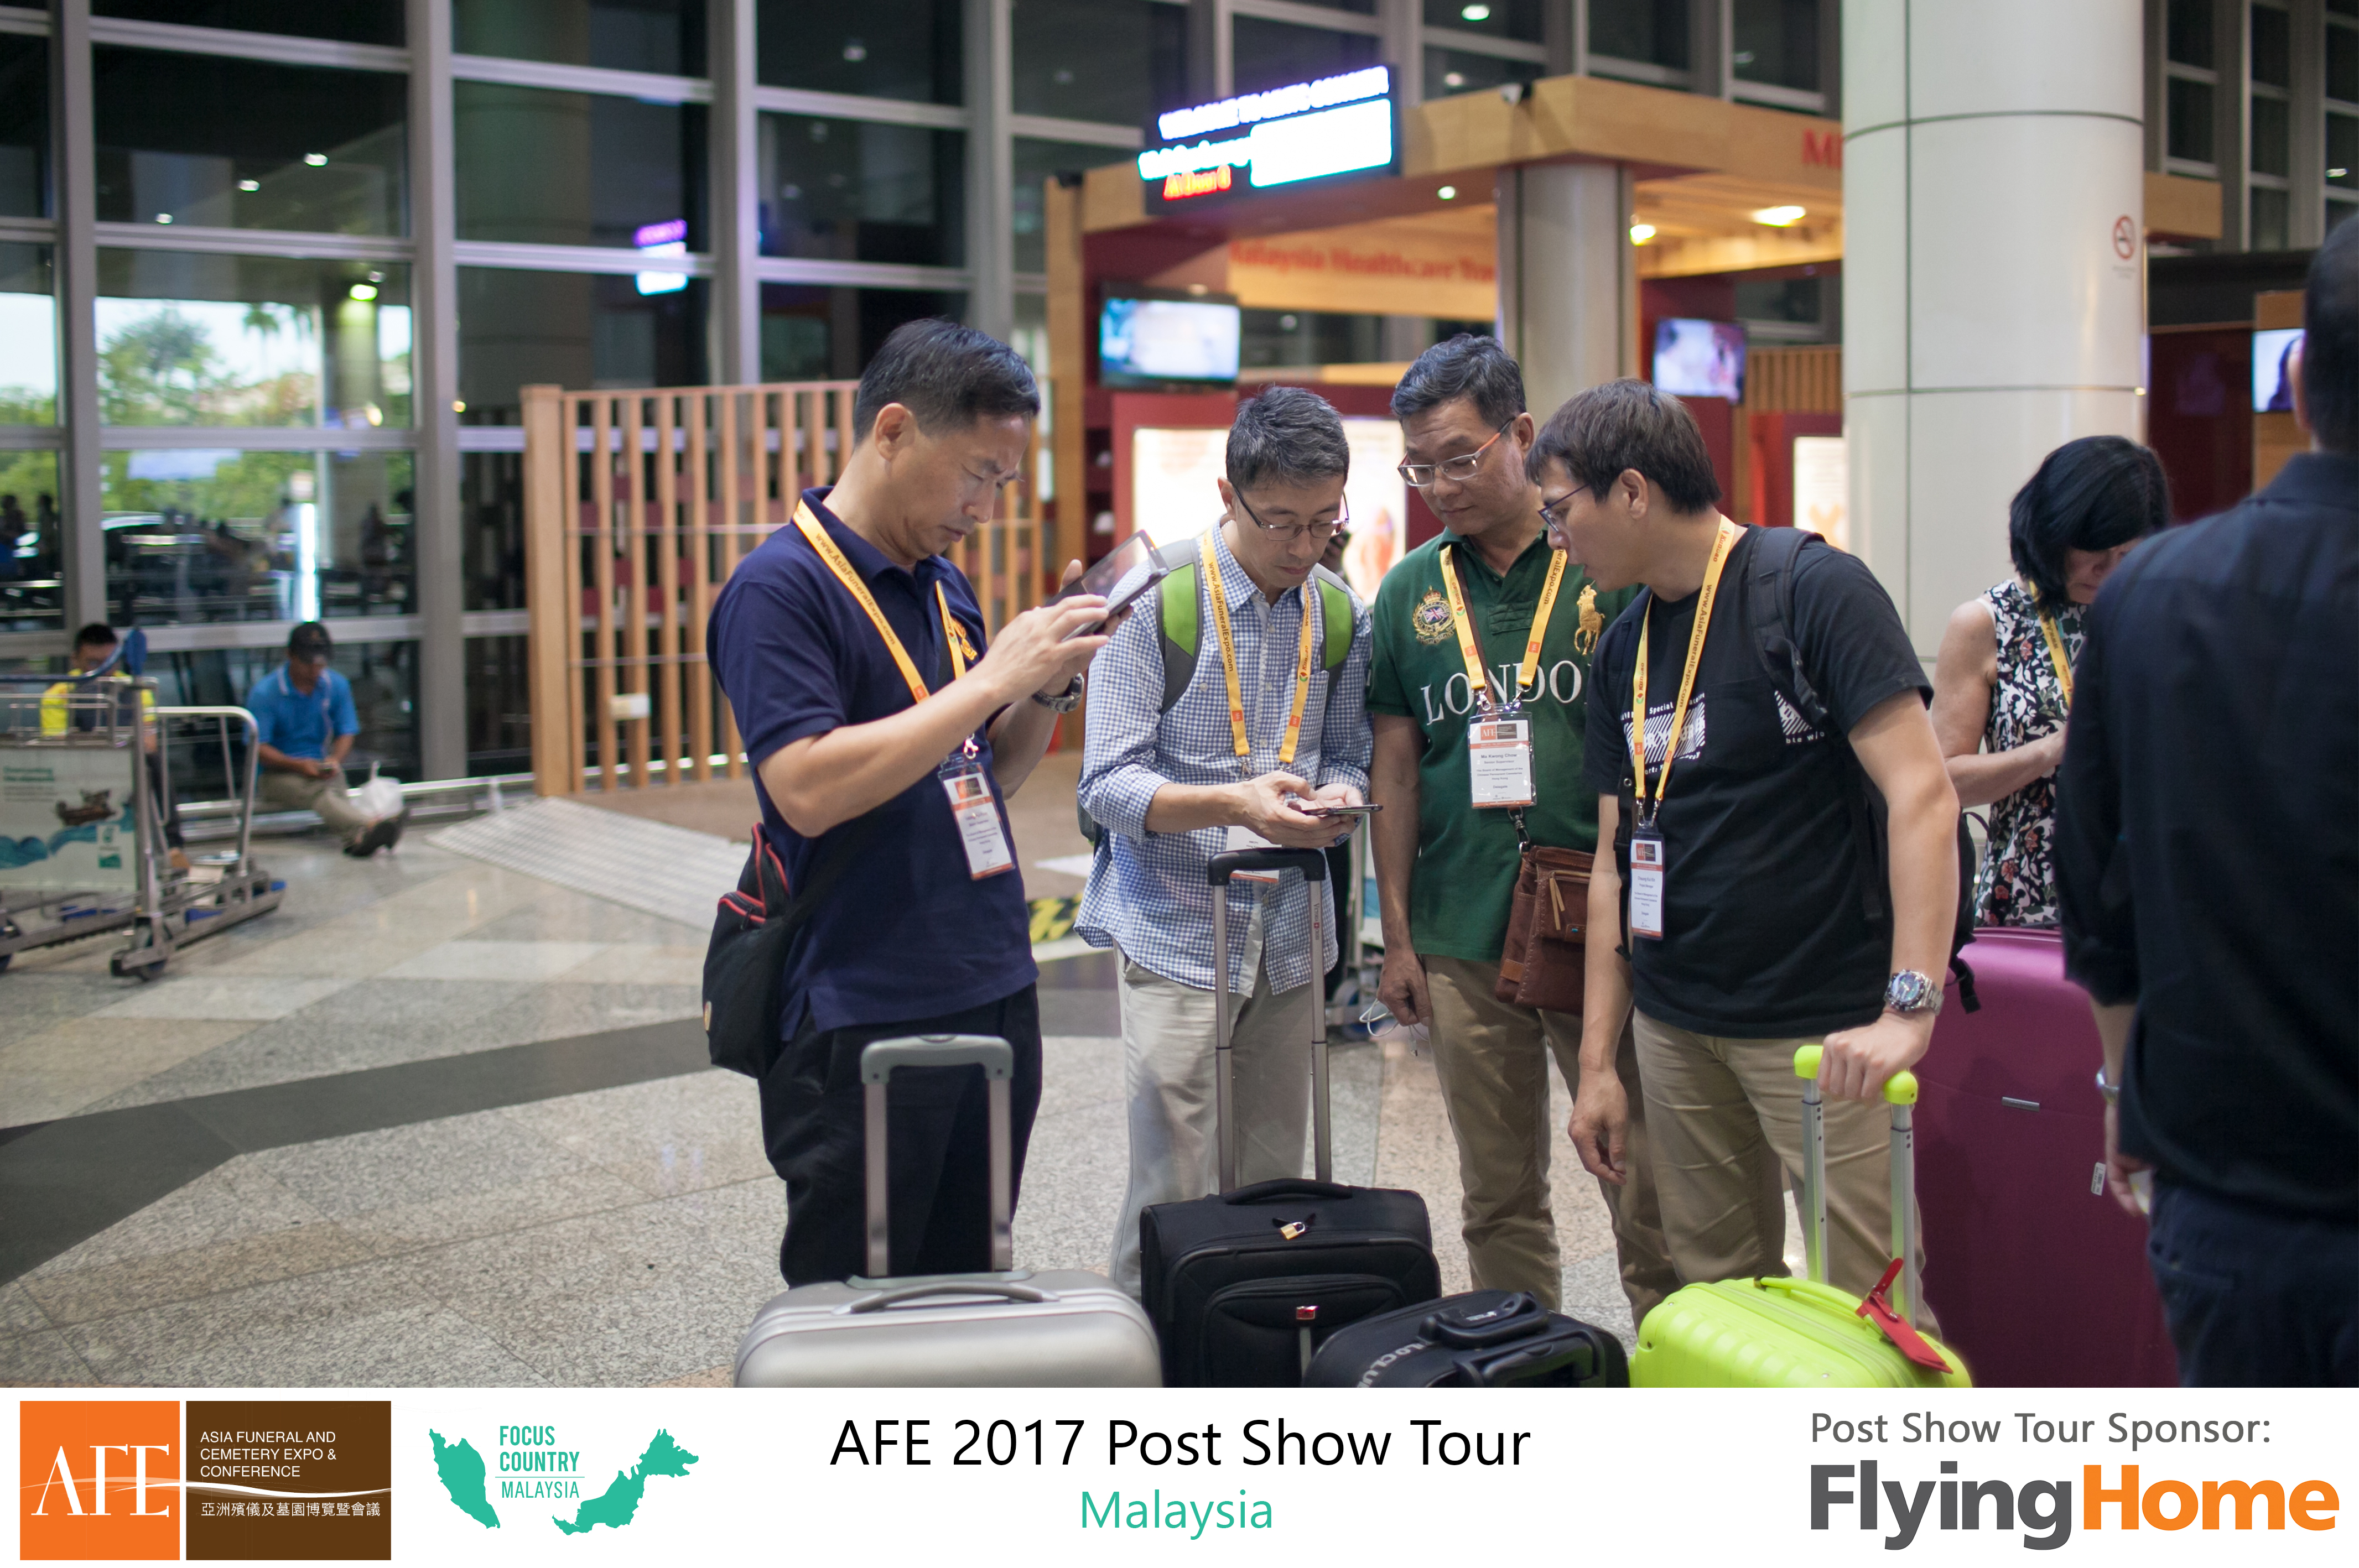 AFE Post Show Tour 2017 Day 1 - 04